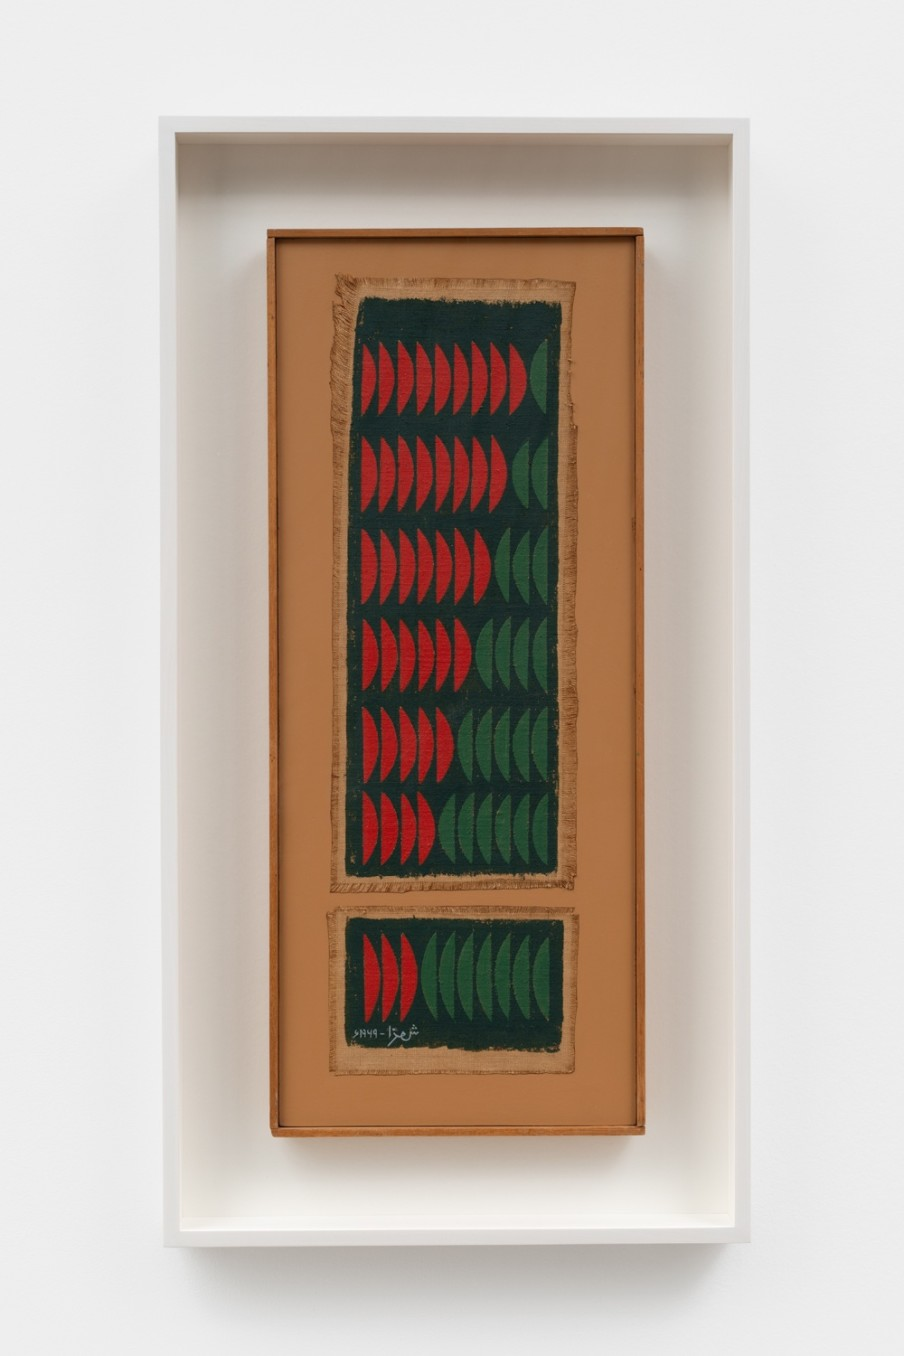 Anwar Jalal Shemza, Opposing Forces, 1969, Oil On Canvas In Two 2 Parts On Hardboard, 61.5 x 25.5 cm, Framed: 76.5 x 40 cm